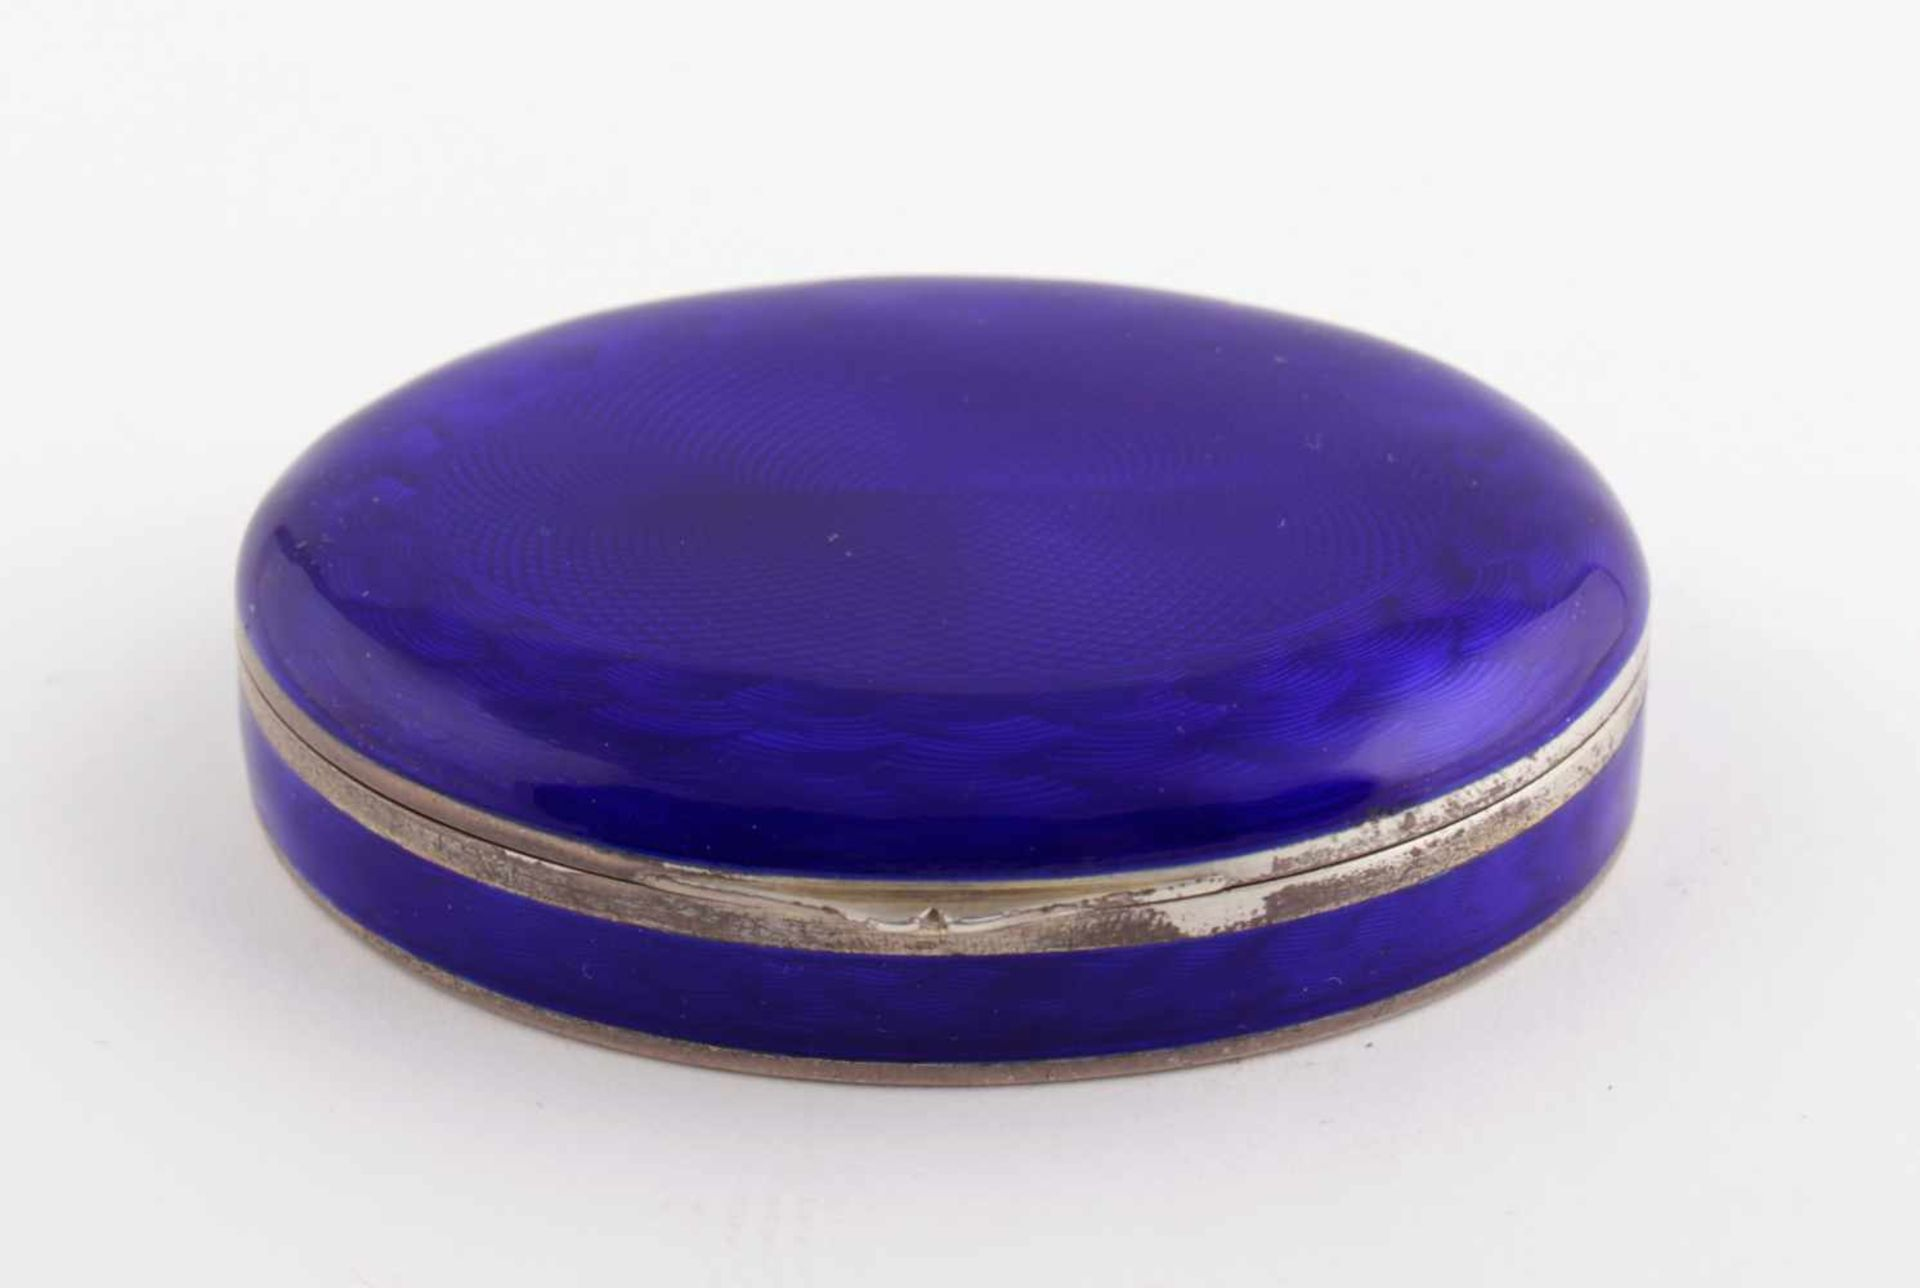 Silver enamel decorated box 1st third of the 20th century, marked KA & Co, London import hallmarc,